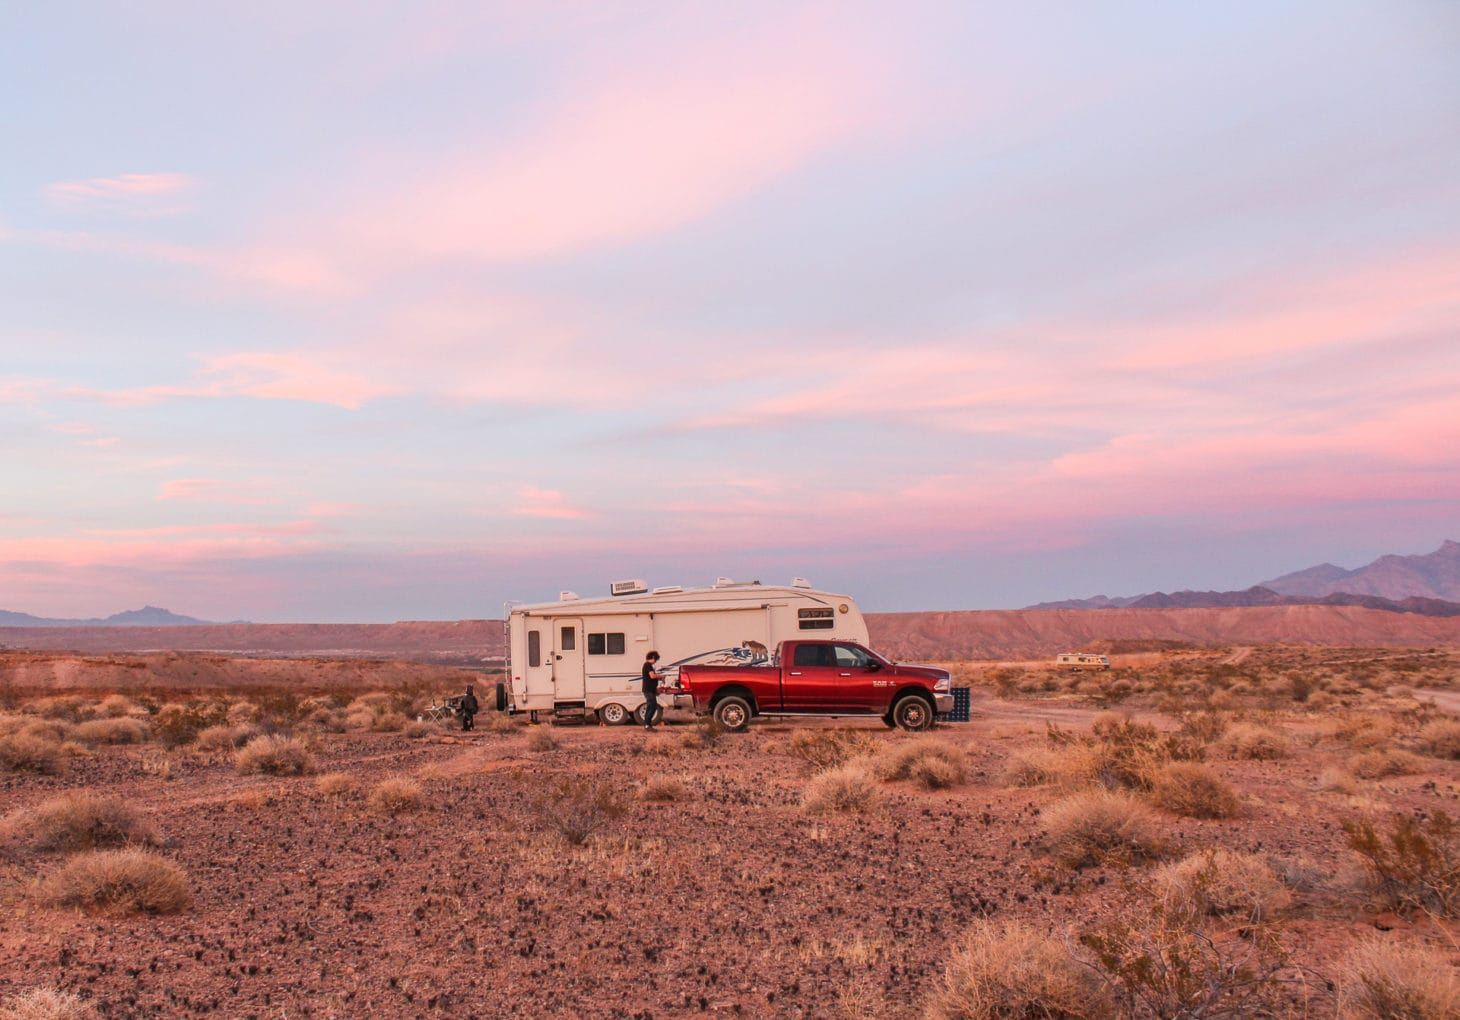 A pickup truck is parked next to a fifth wheel RV as sun sets. There is one other RV in the background